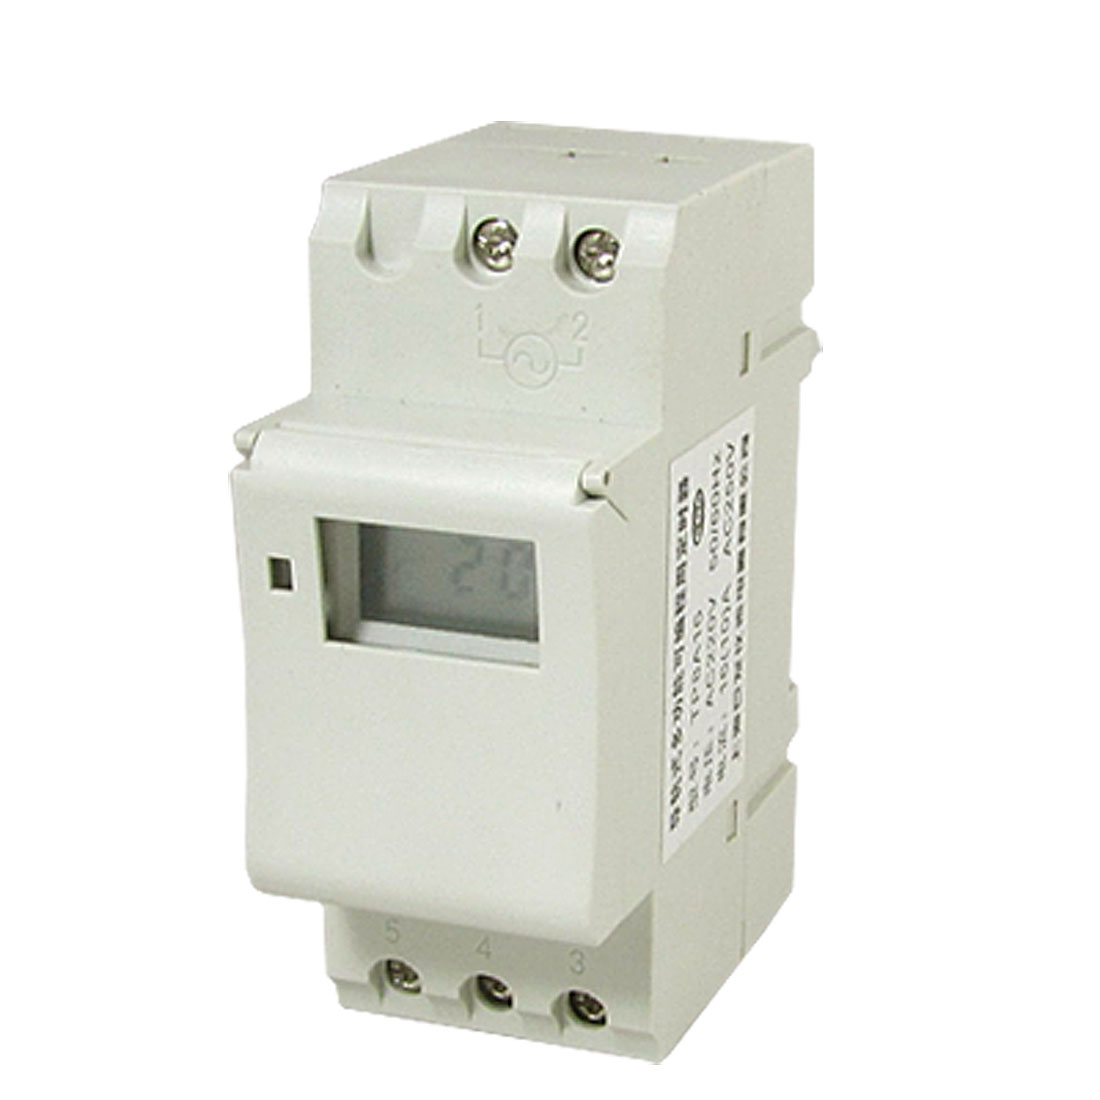 AC 220V DIN Rail Mount Week Time Display Digital Programmable Timer Switch